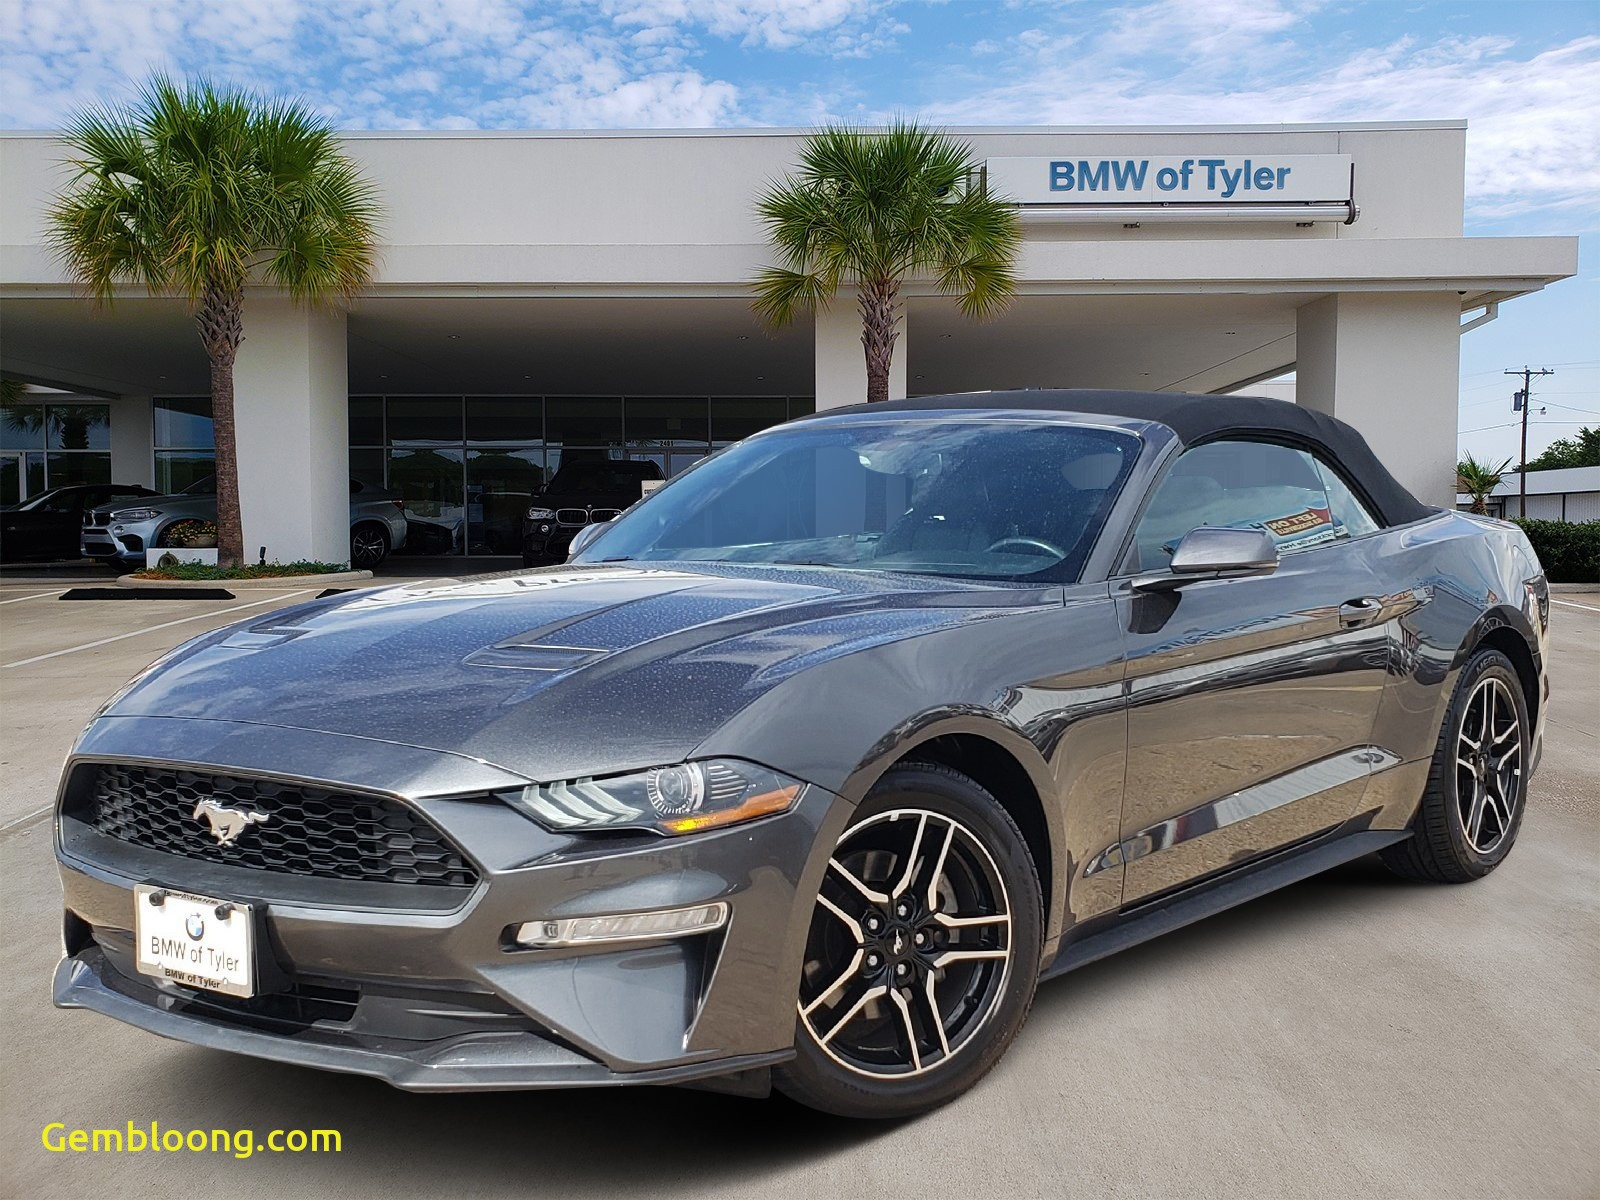 2015 ford Mustang Ecoboost Luxury Pre Owned 2019 ford Mustang Ecoboost Premium Rwd Convertible